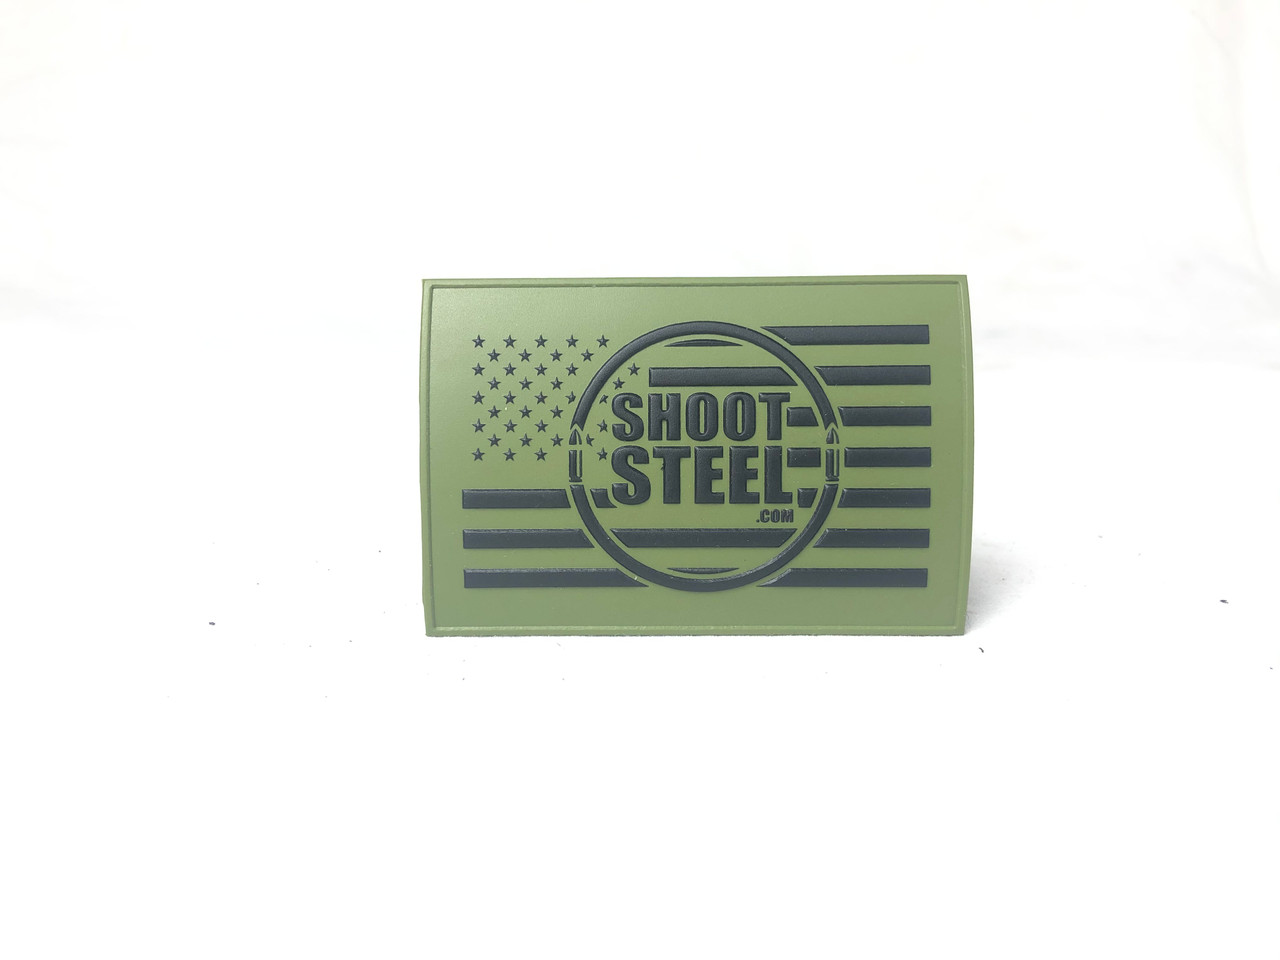 "ShootSteel.com 3""x2"" OD Green Morale Patch"